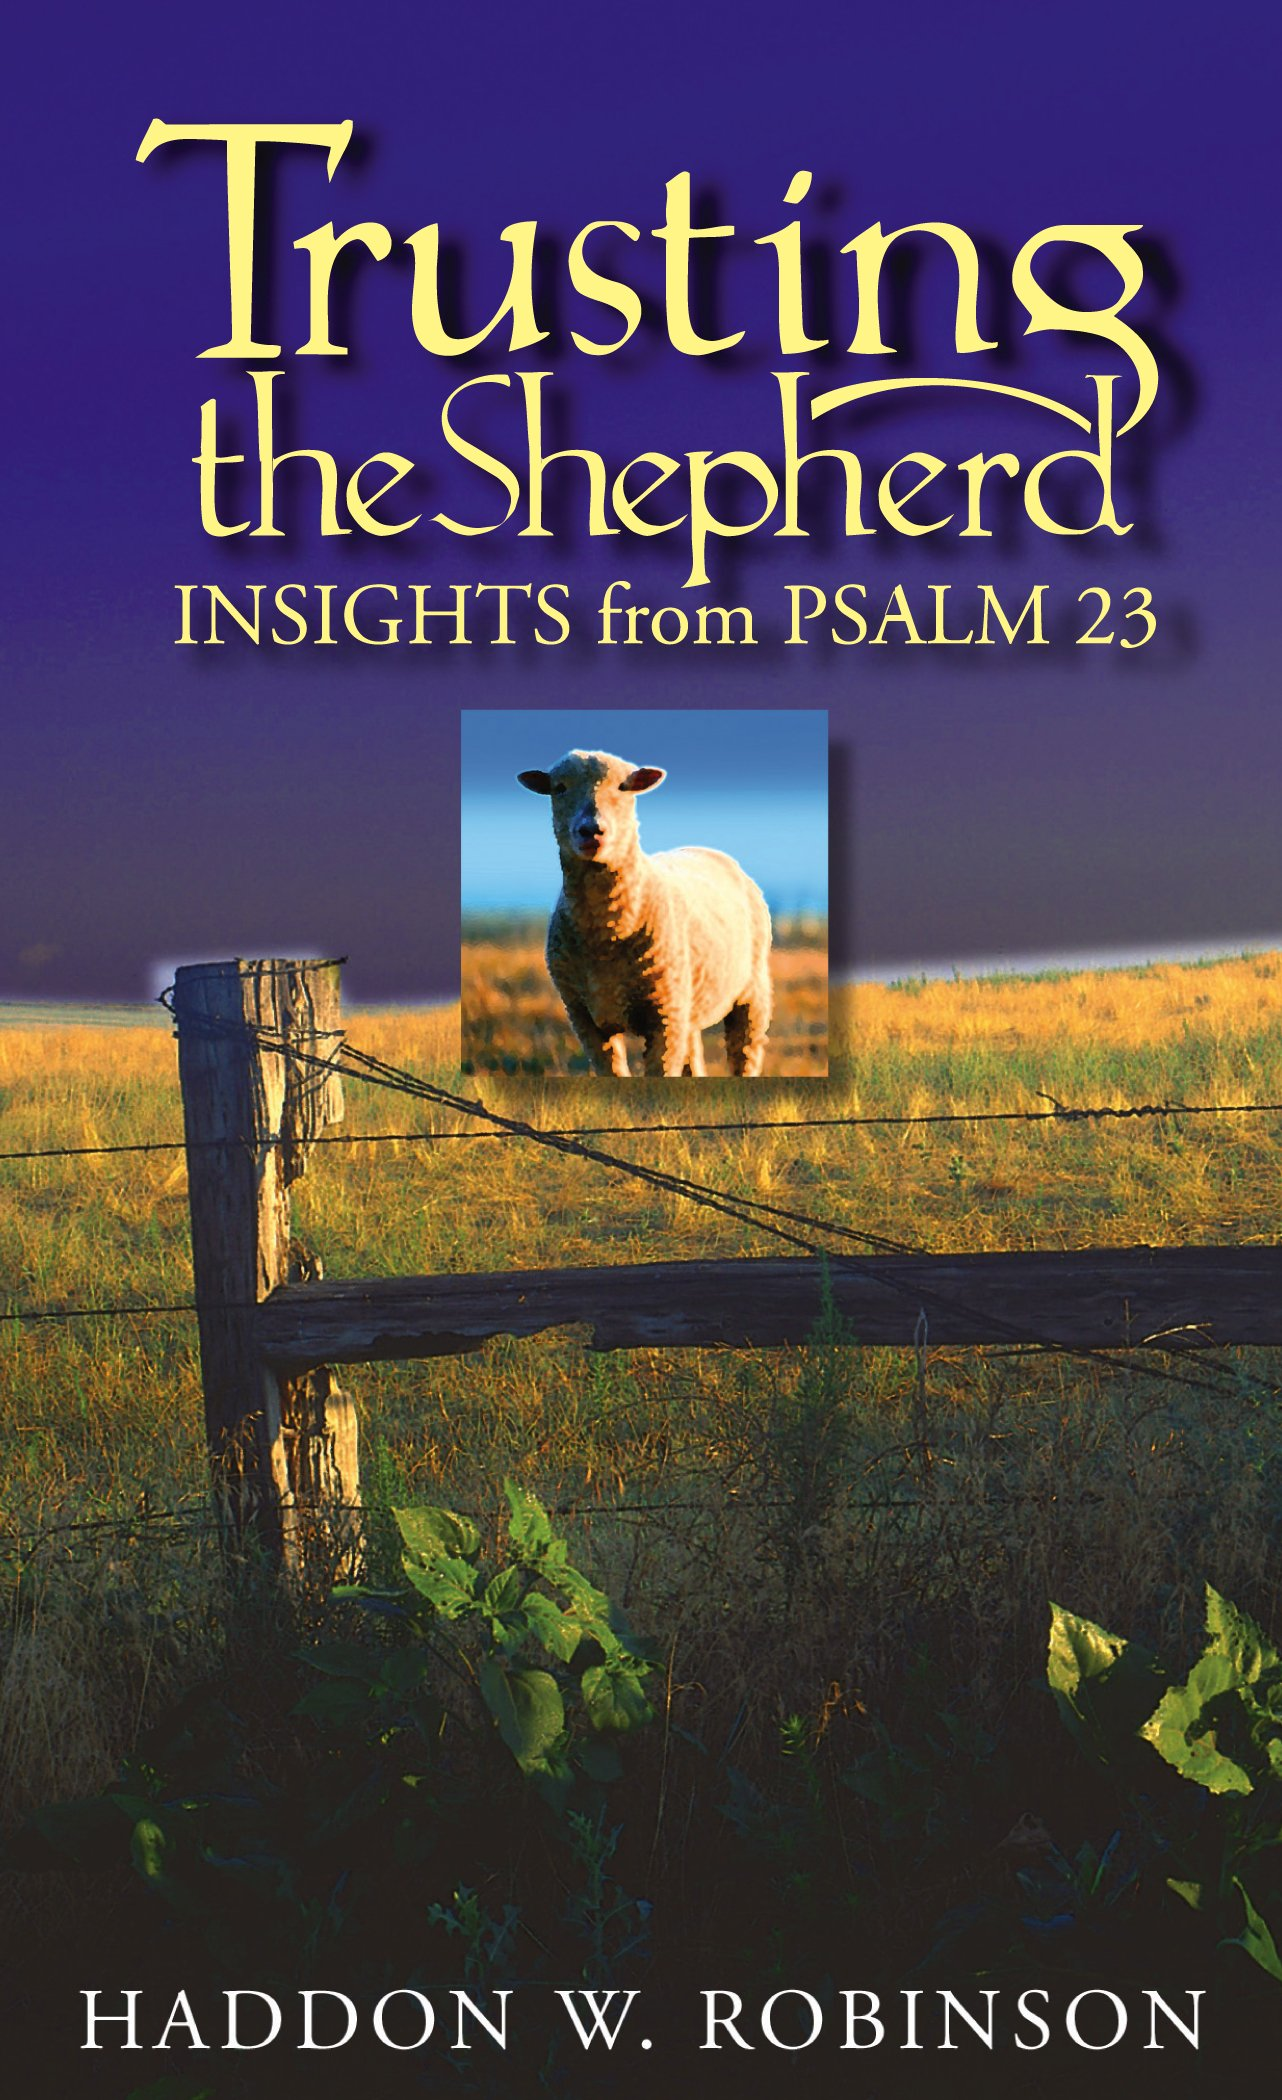 Download Trusting the Shepherd: Insights from Psalm 23 Text fb2 book